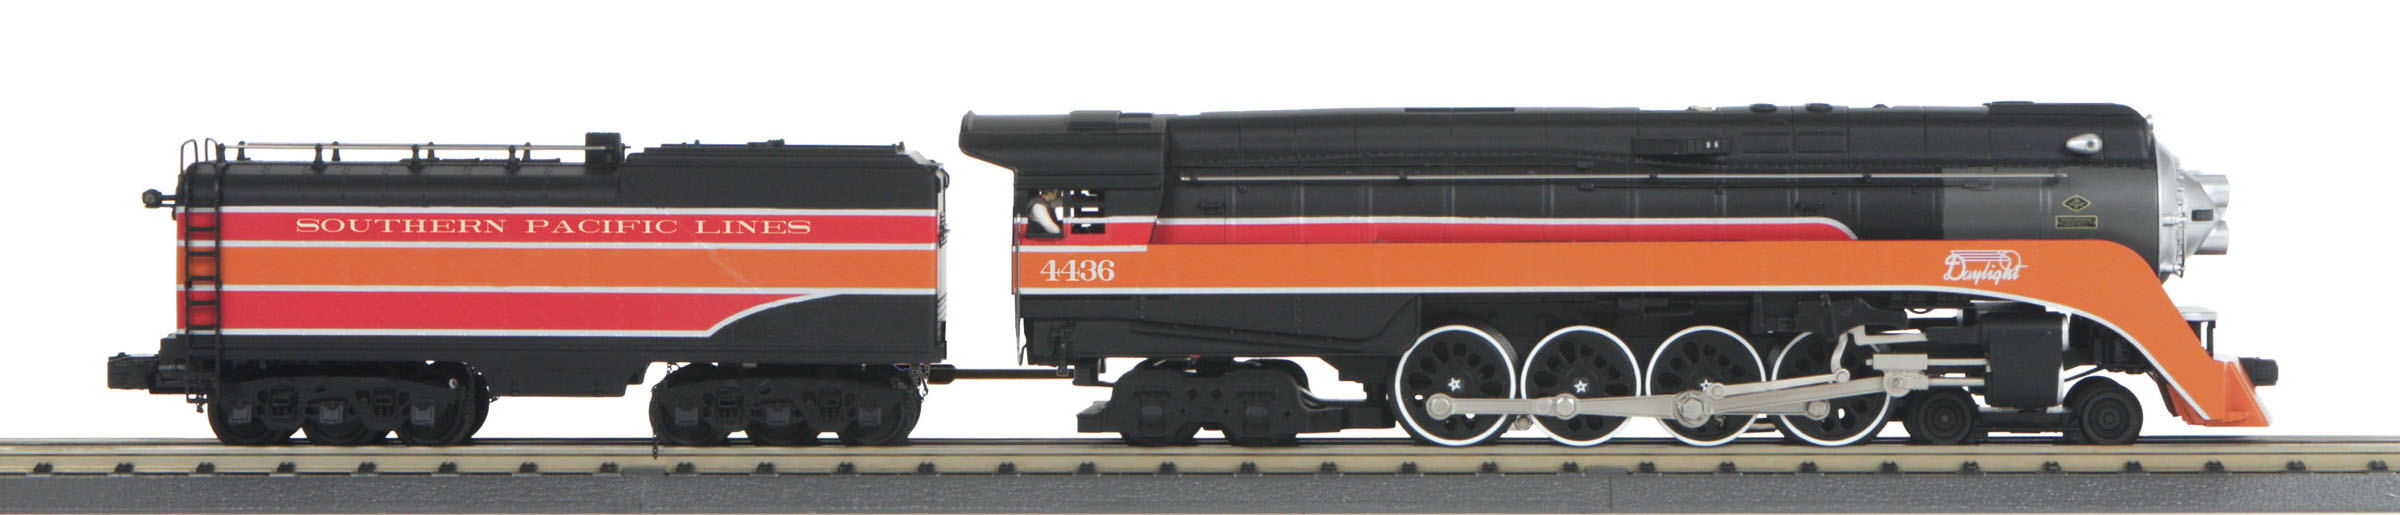 30 1620 1 steam locomotive mth electric trains  at fashall.co